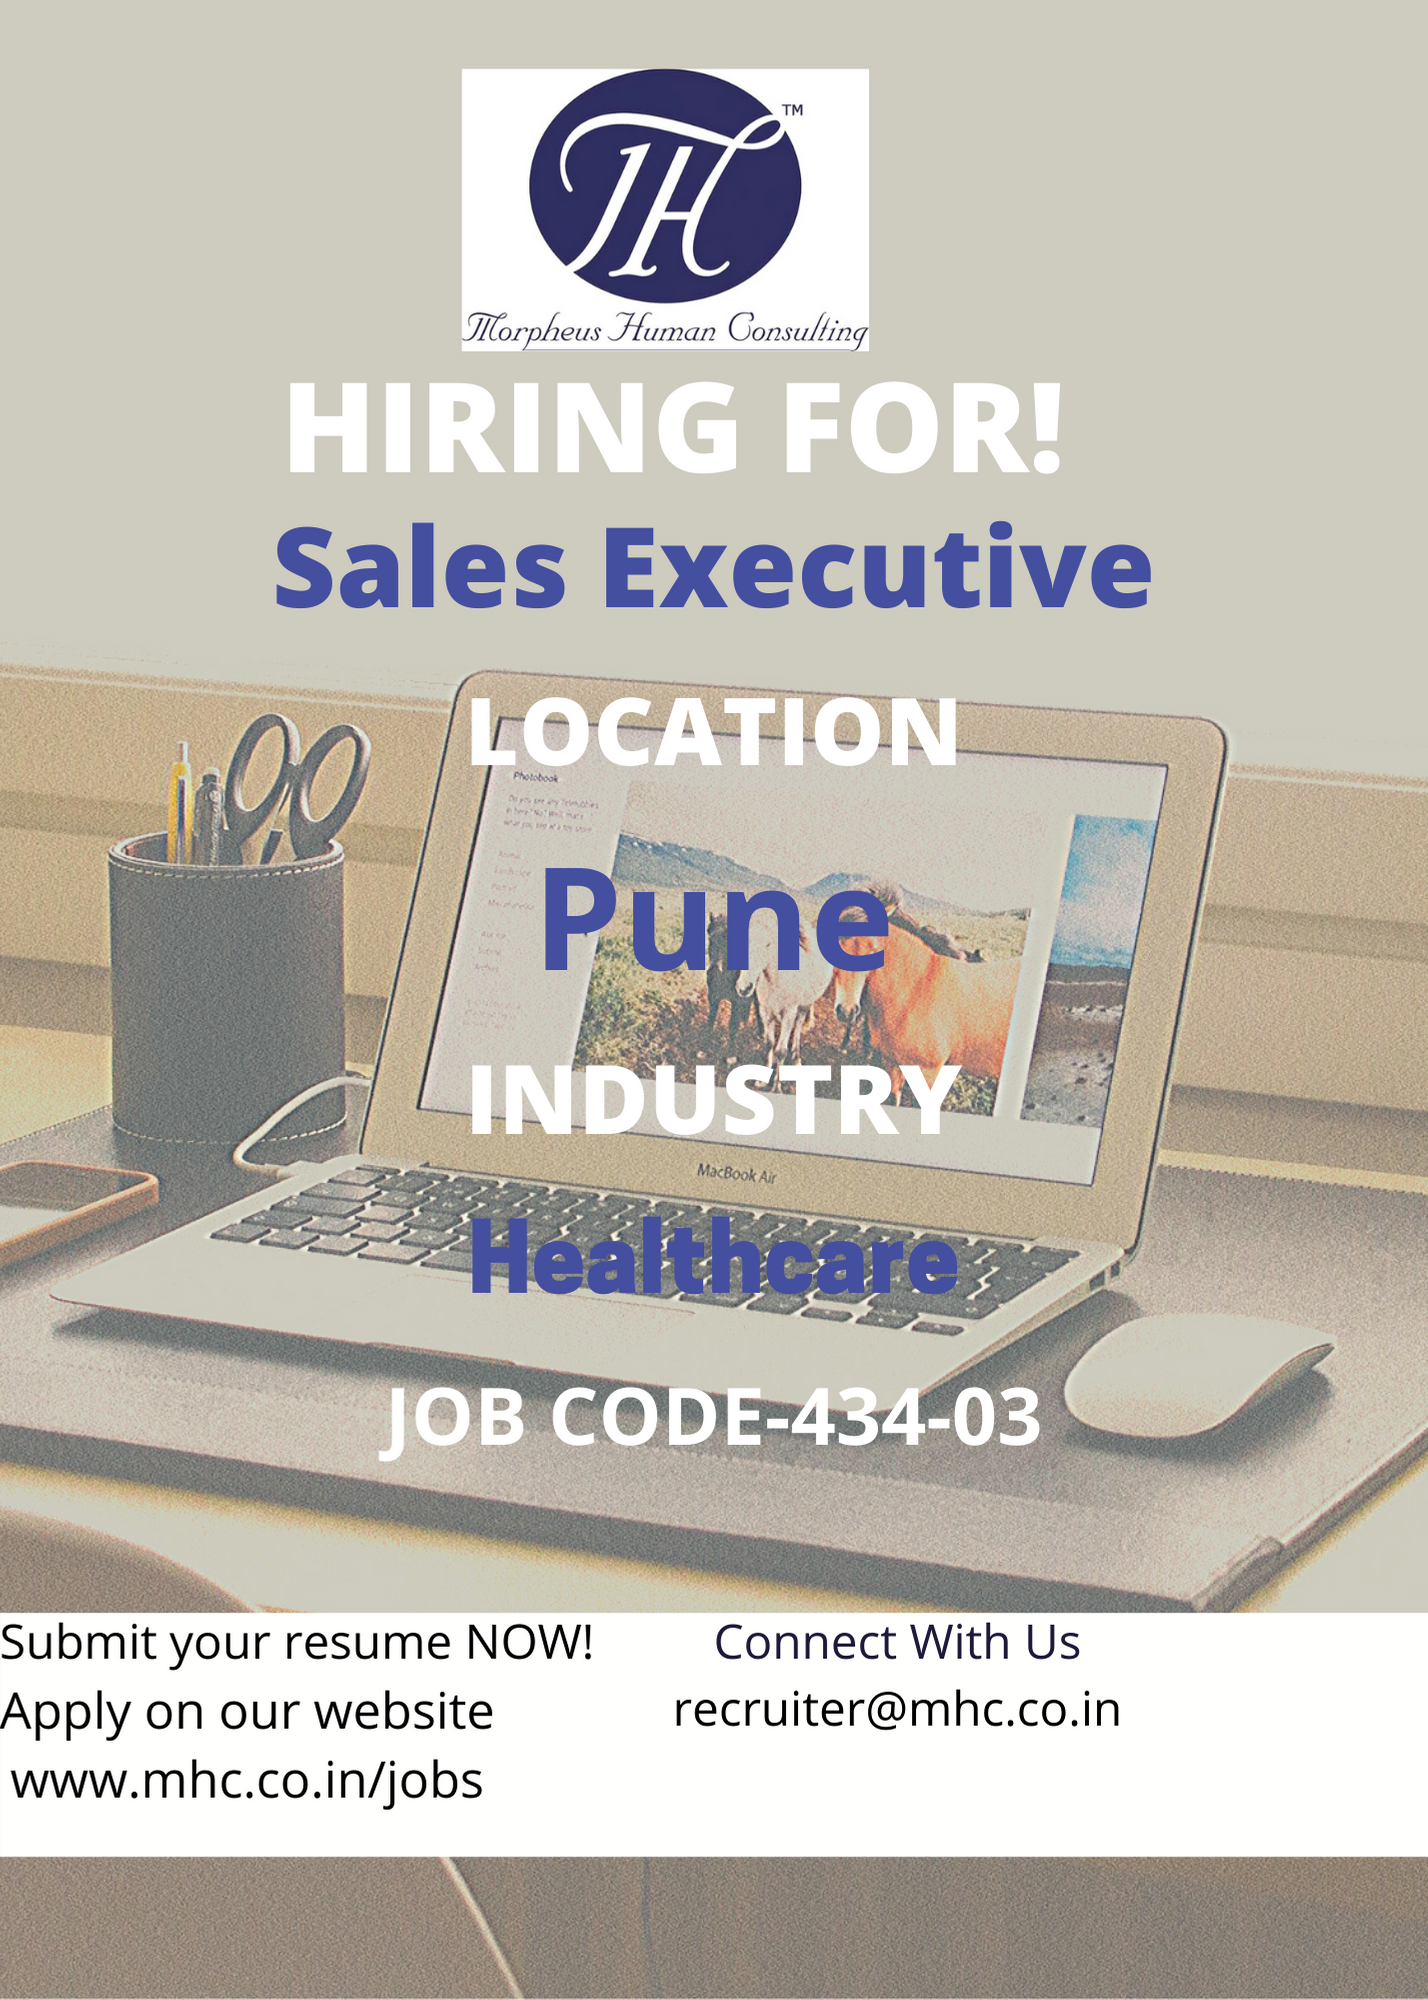 Kindly find below the Job Responsibilities: • Proficient in PHR NOBORI app, Good communication skills • Promote the App •Analysis on number of enrolled patients and drop outs if any.  #jobopportunity #jobsinpune #sales #healthcareindustry  #executive #jobsearch #employers #recruiter #recruitment #cv #interview  #hiring  #opportunities #morpheusconsulting #job #jobs #vacancies #tweetmyjobs #HR  #employment #opportunity #recruiting #jobangels